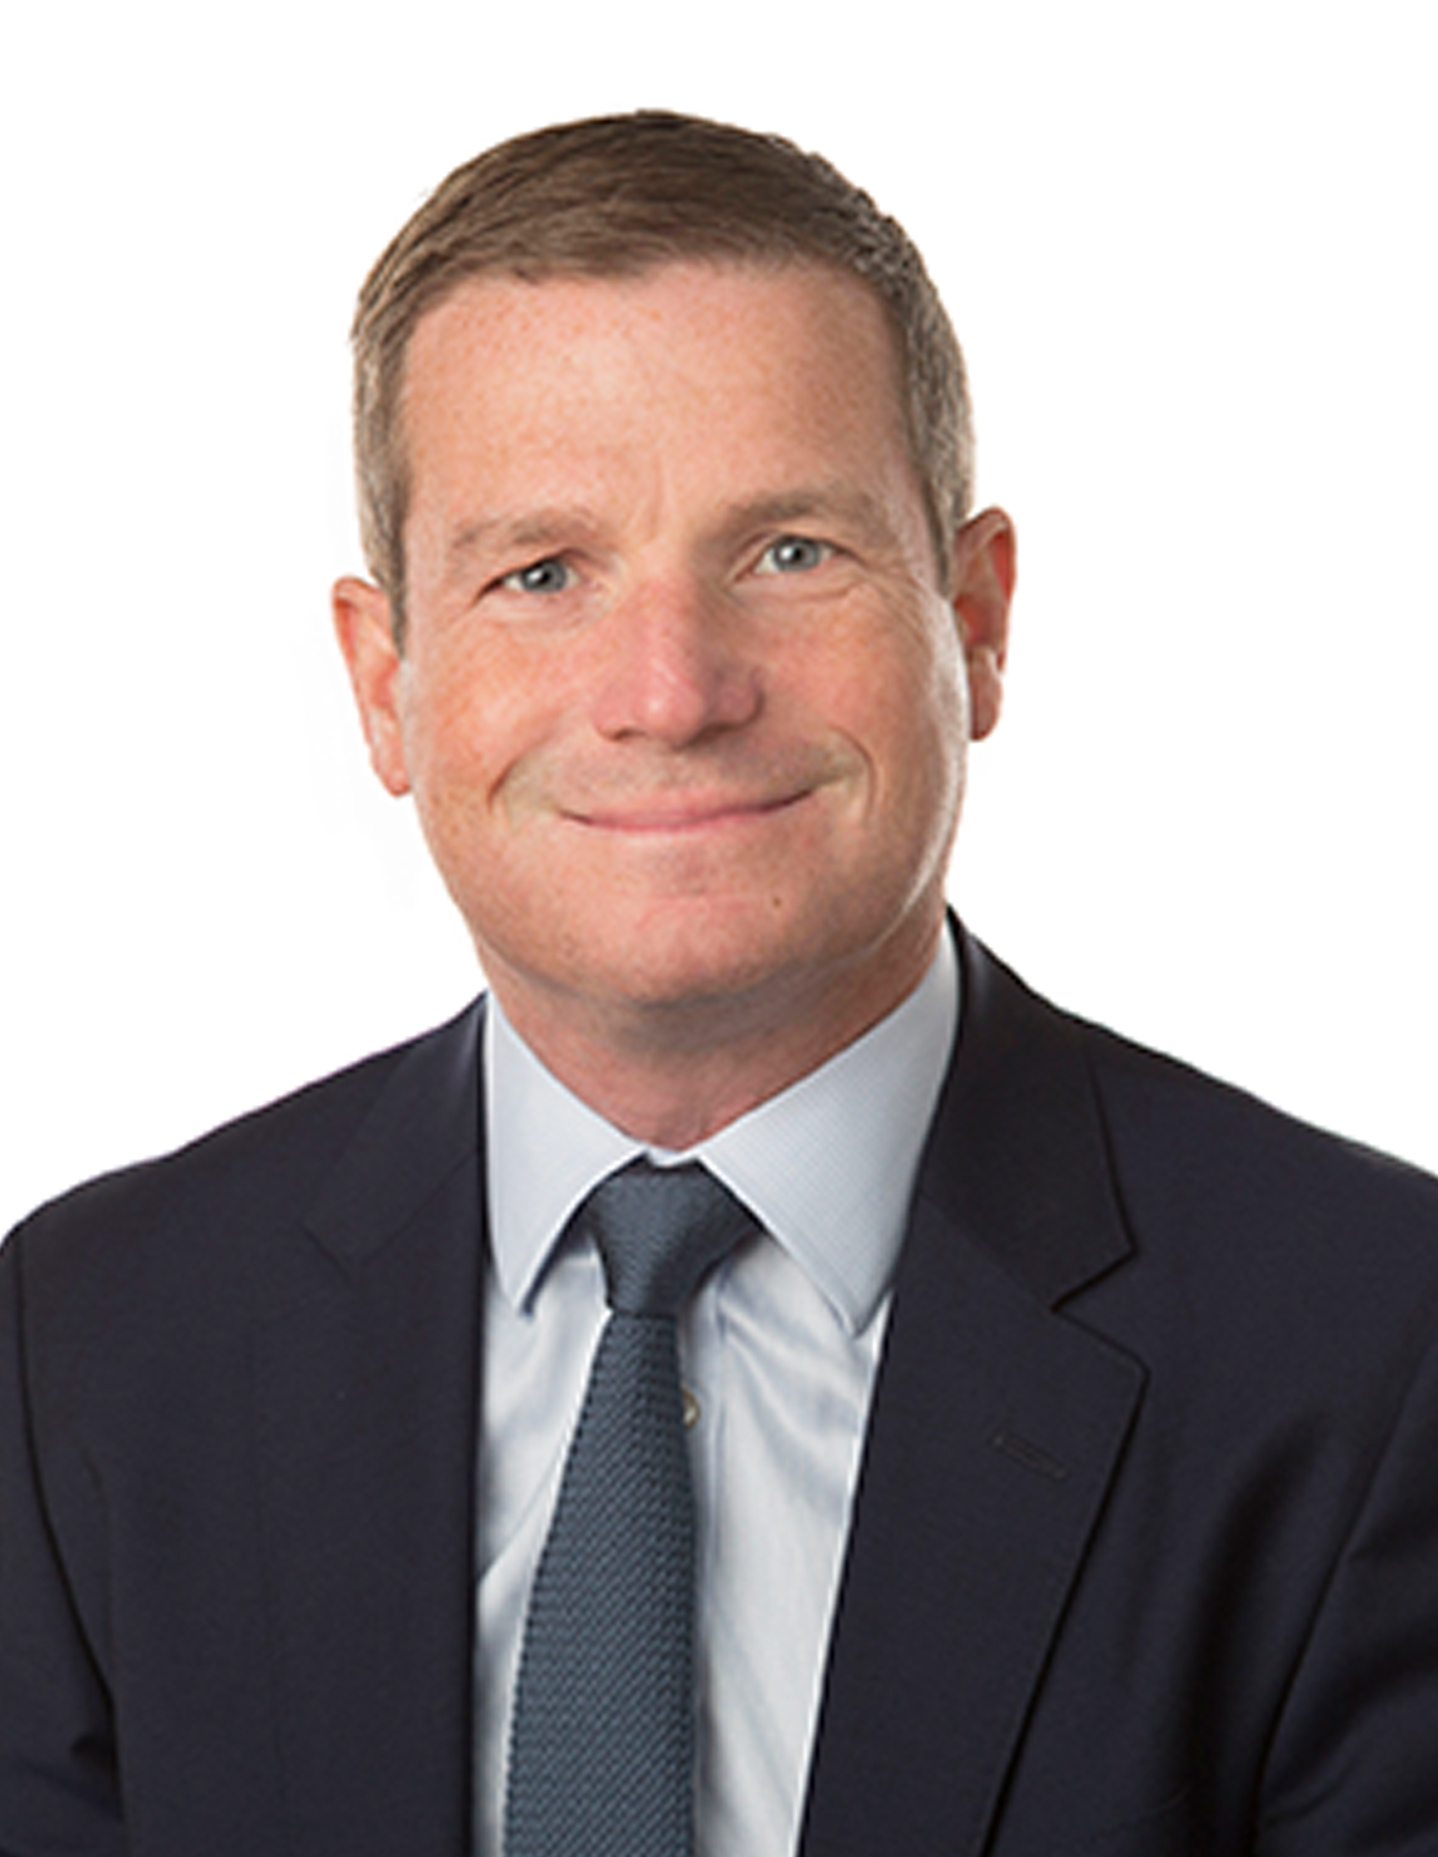 Gary Fry, CEO, Global Graphics PLC